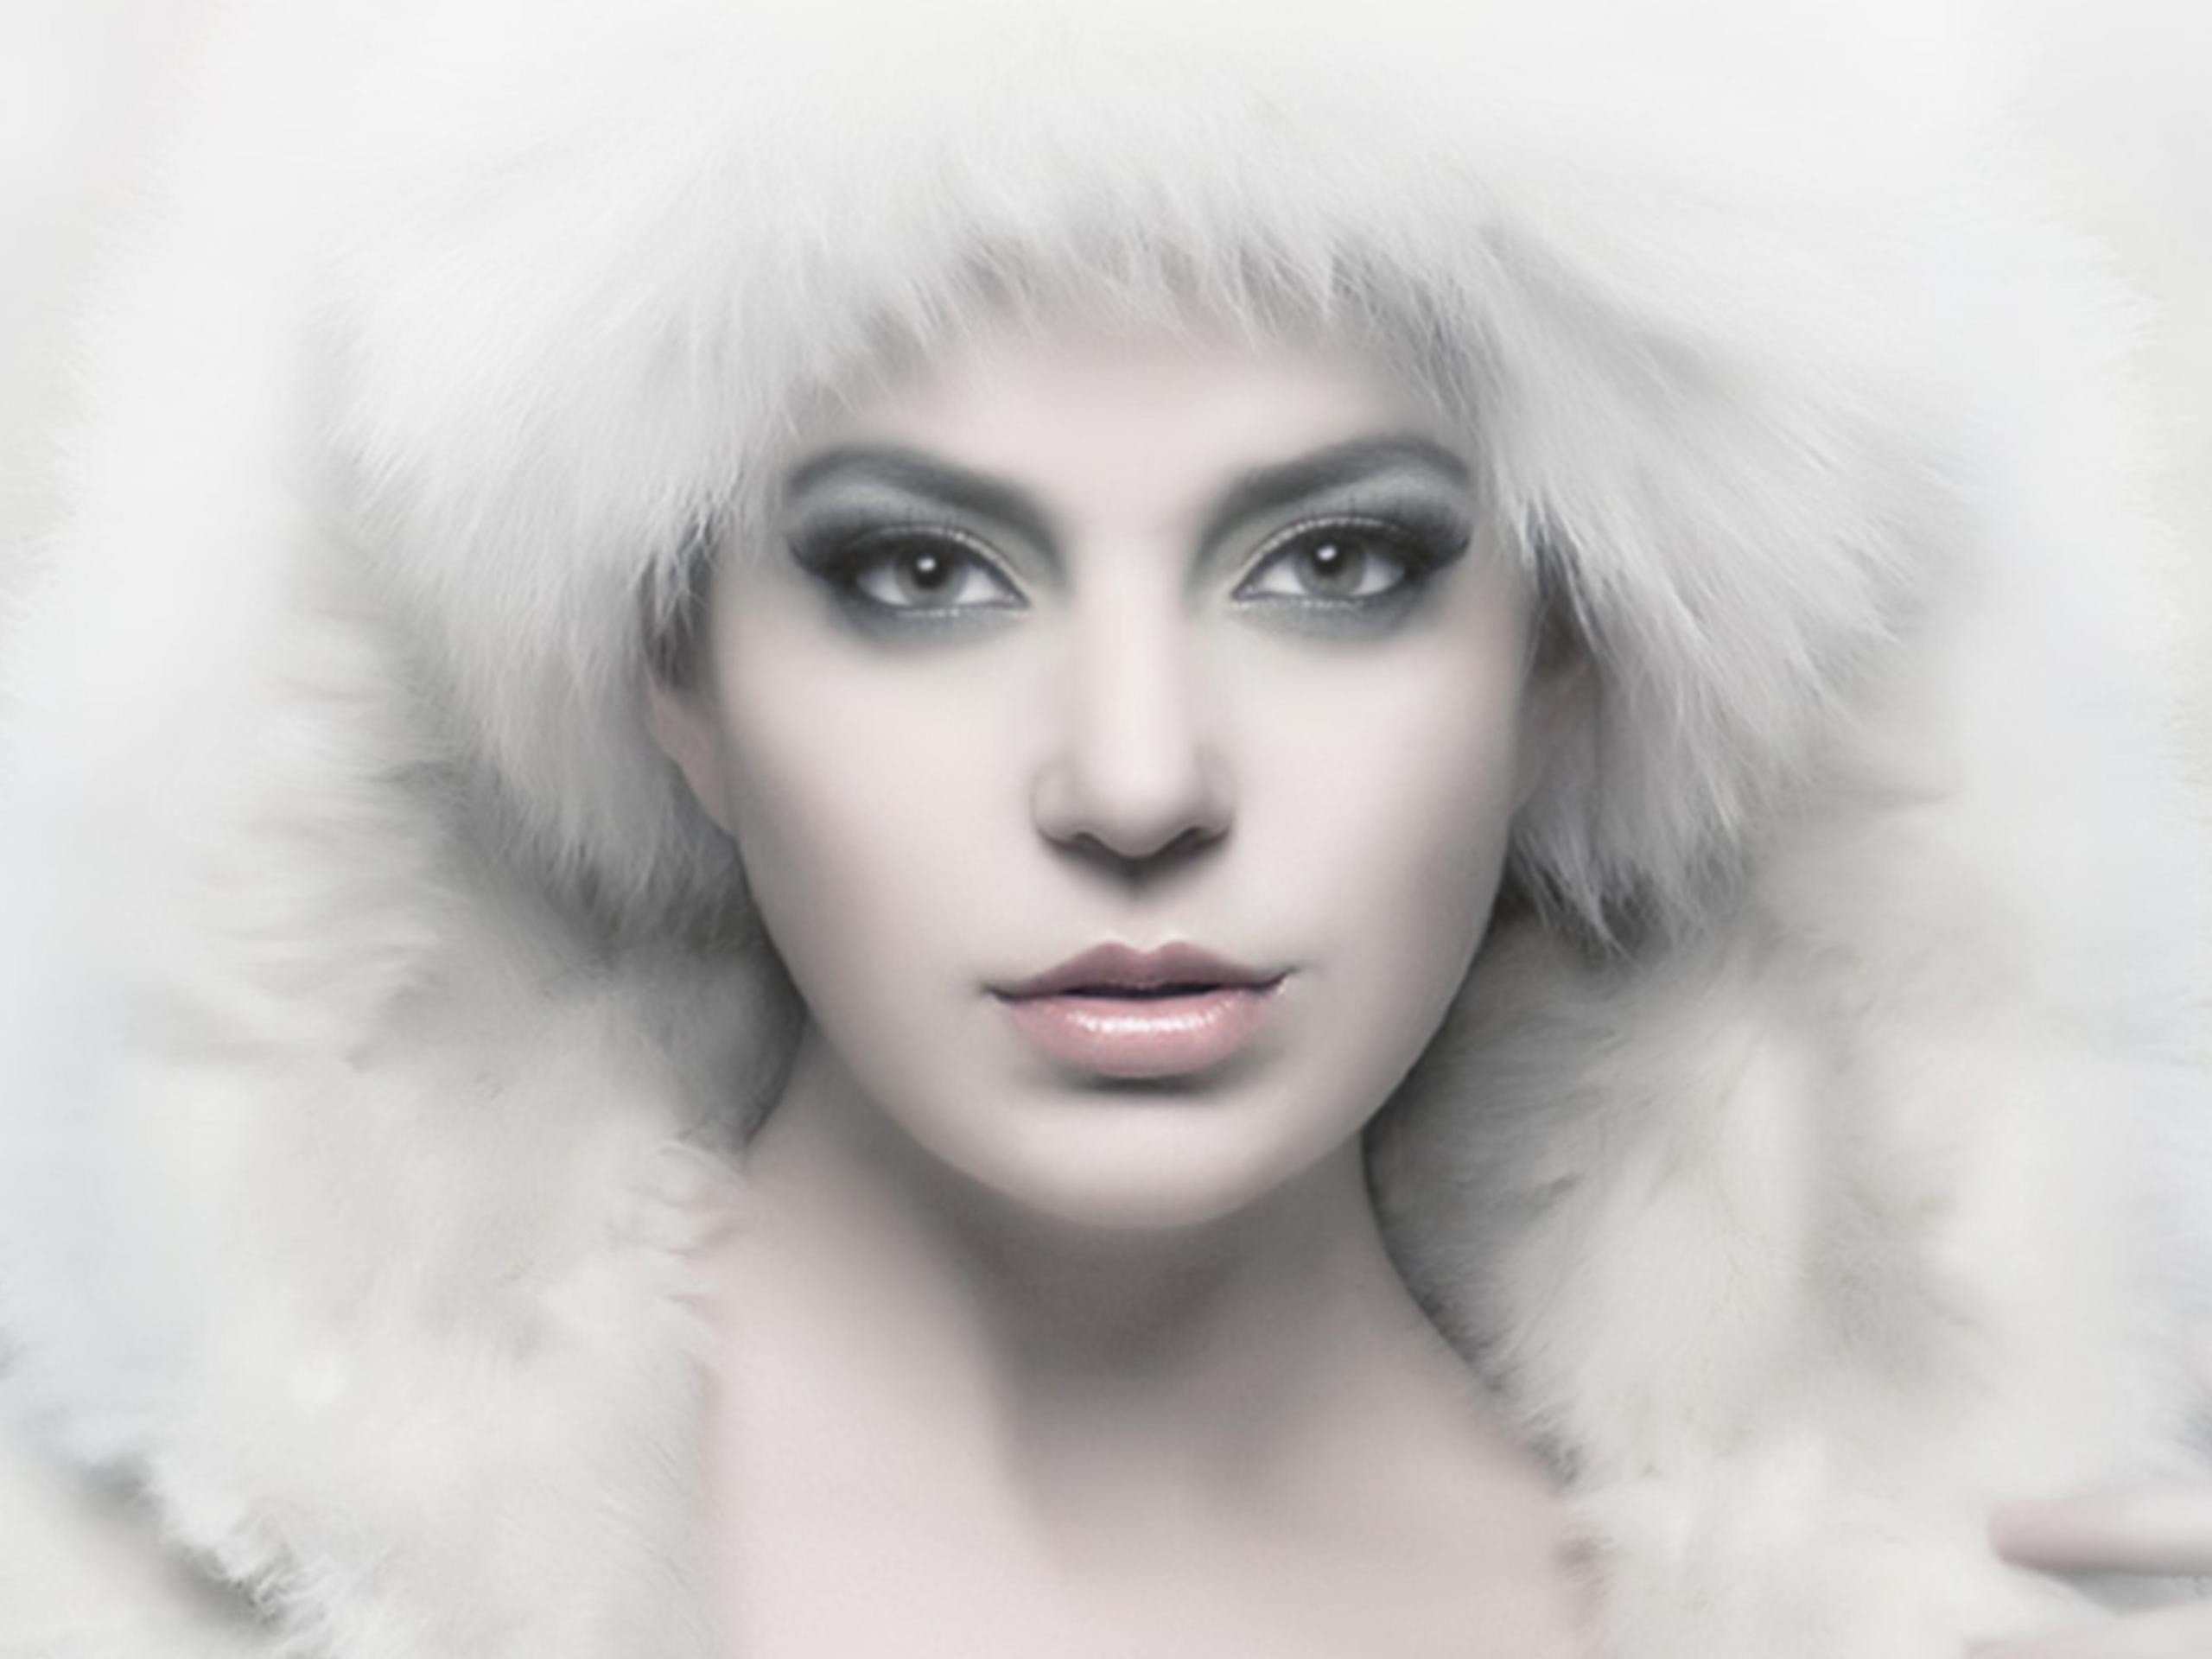 faces white background fur hats fur clothing wallpaper background 2560x1920